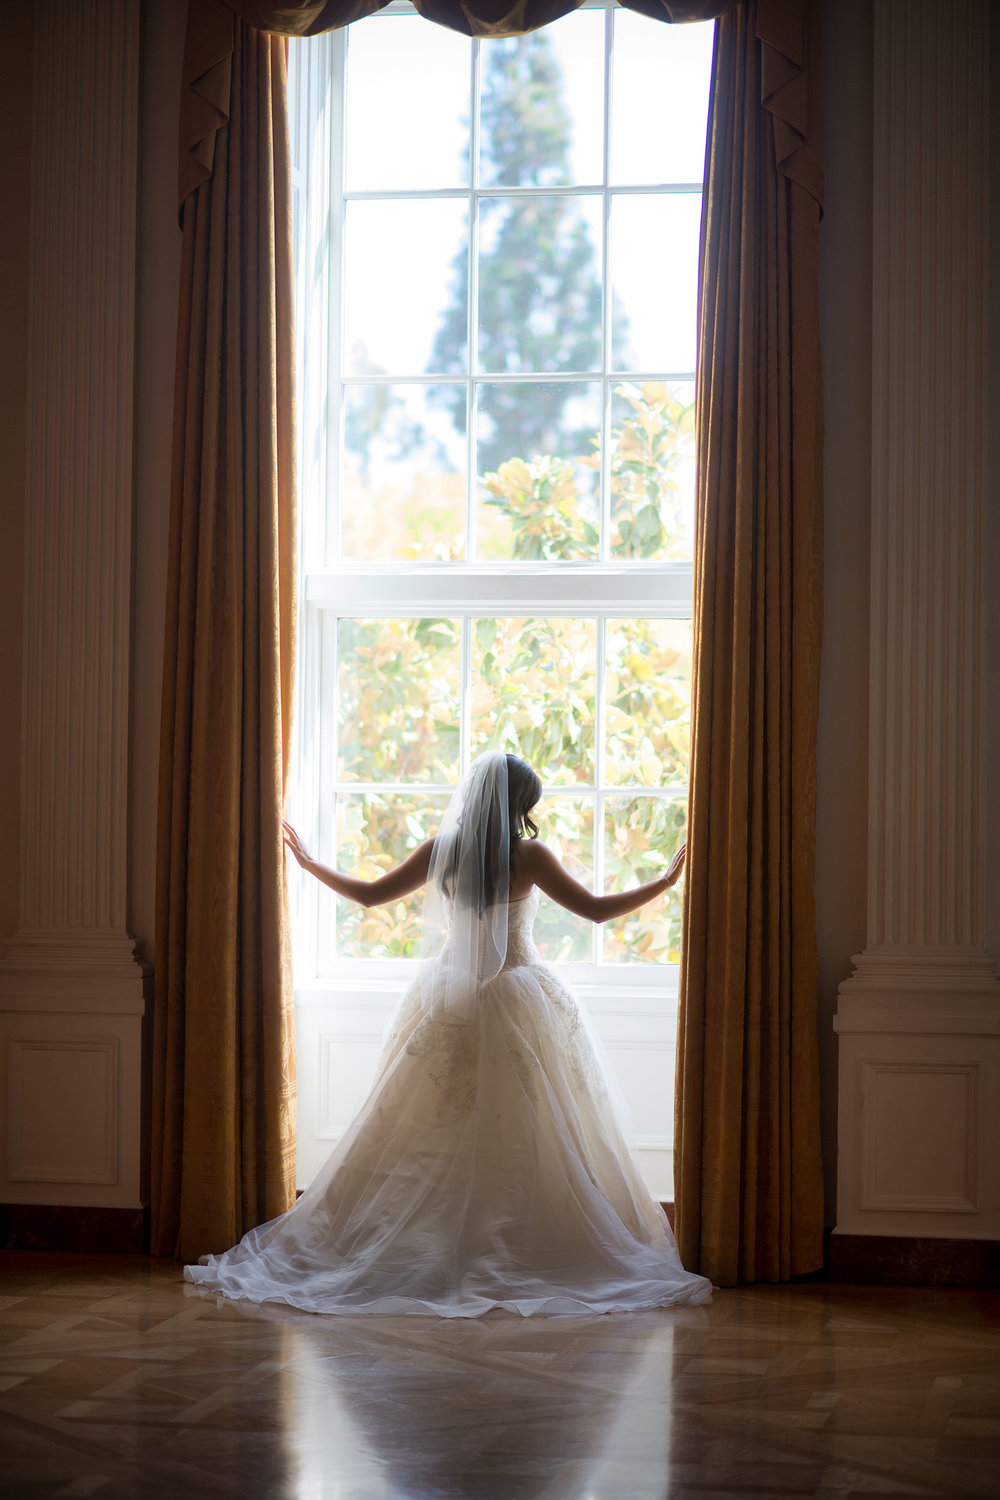 Bride backlit in window at the Richard Nixon Presidential Library & Museum in Yorba Linda.